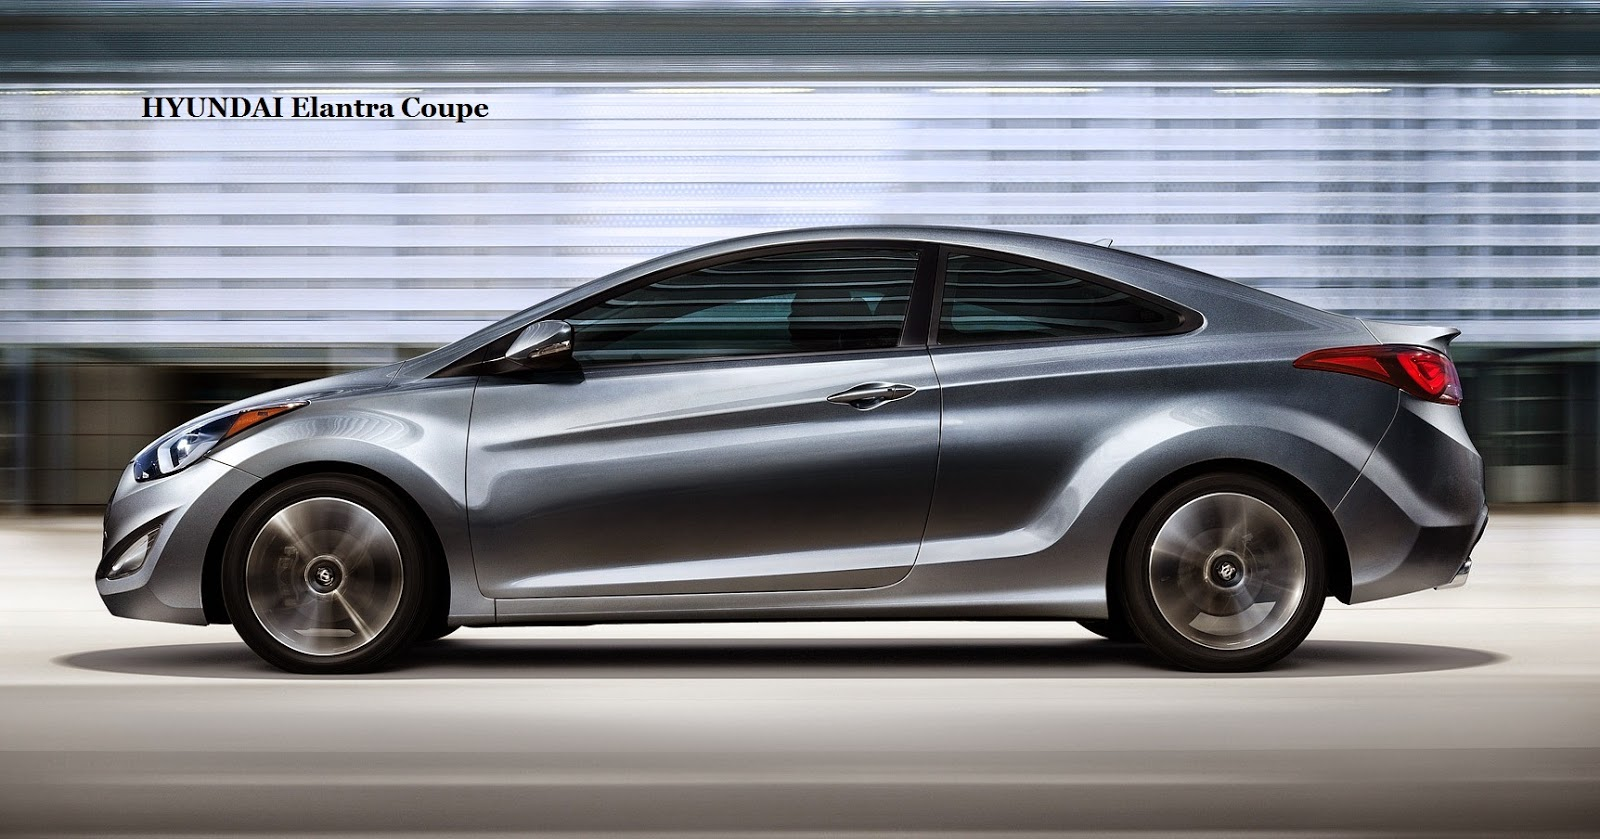 Hyundai Elantra Coupe   Review, Specs, Features   Car Reviews   New Car  Pictures For 2018, 2019